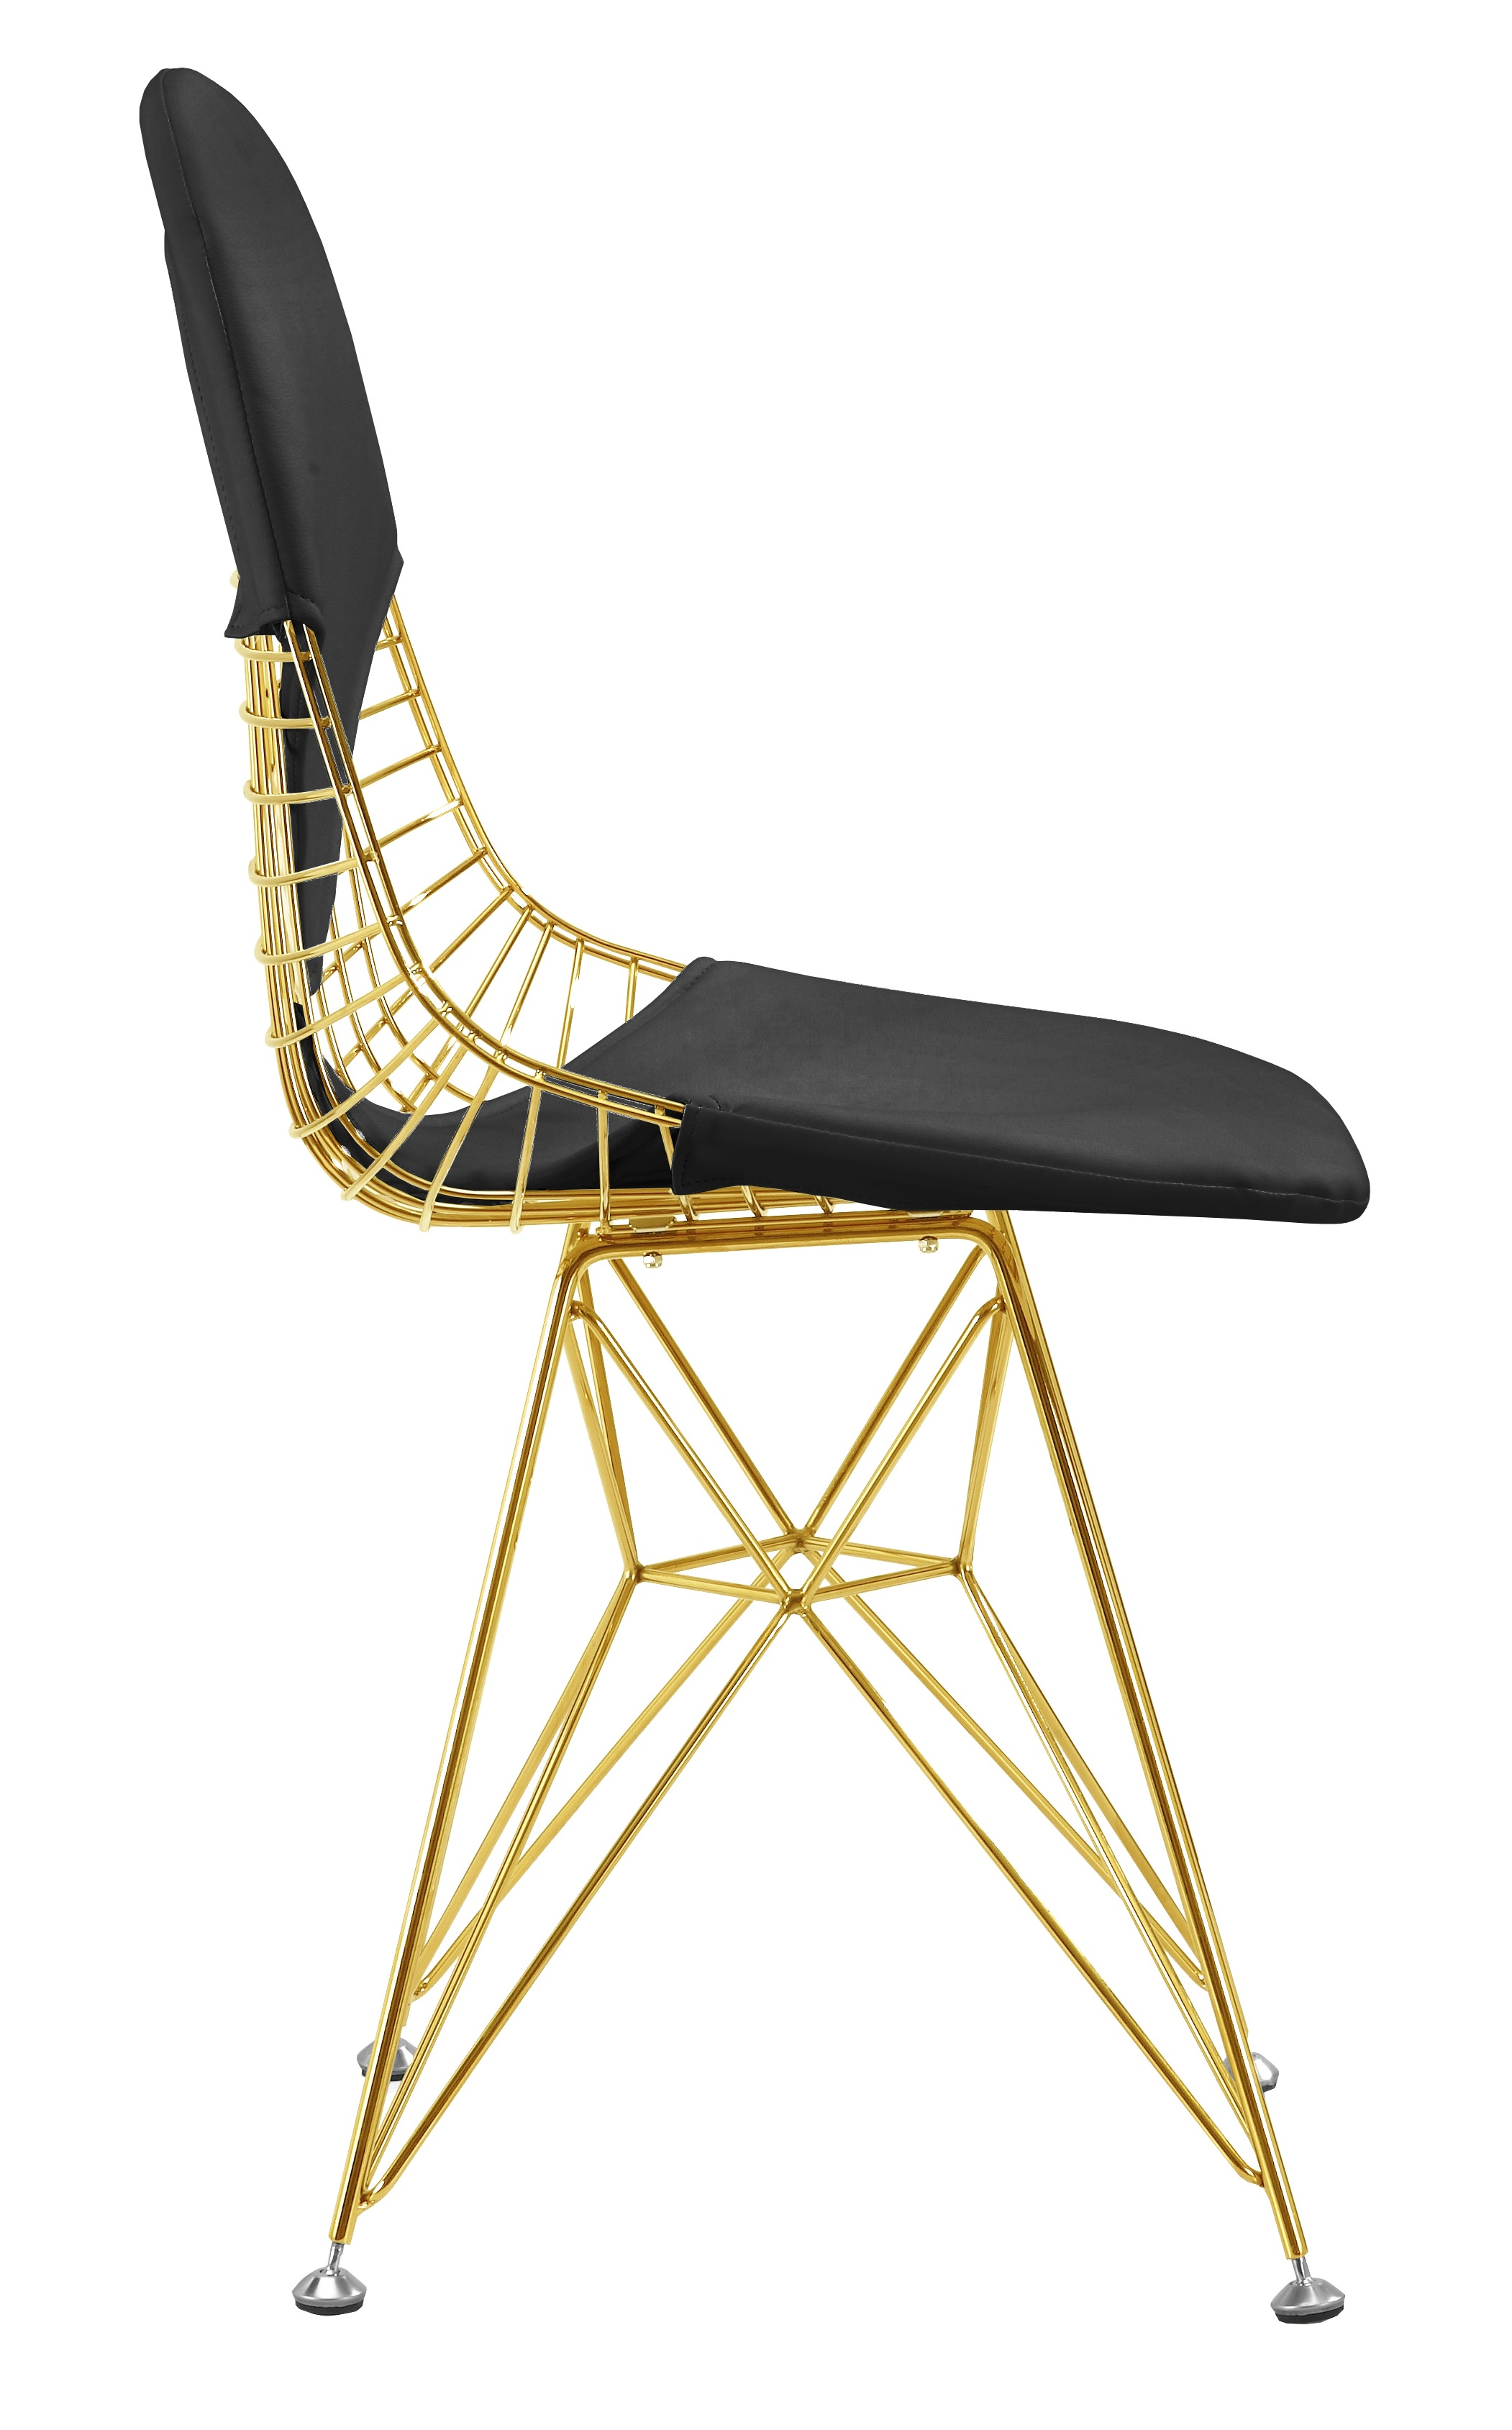 wire-gold-chair-black-cushion.jpg